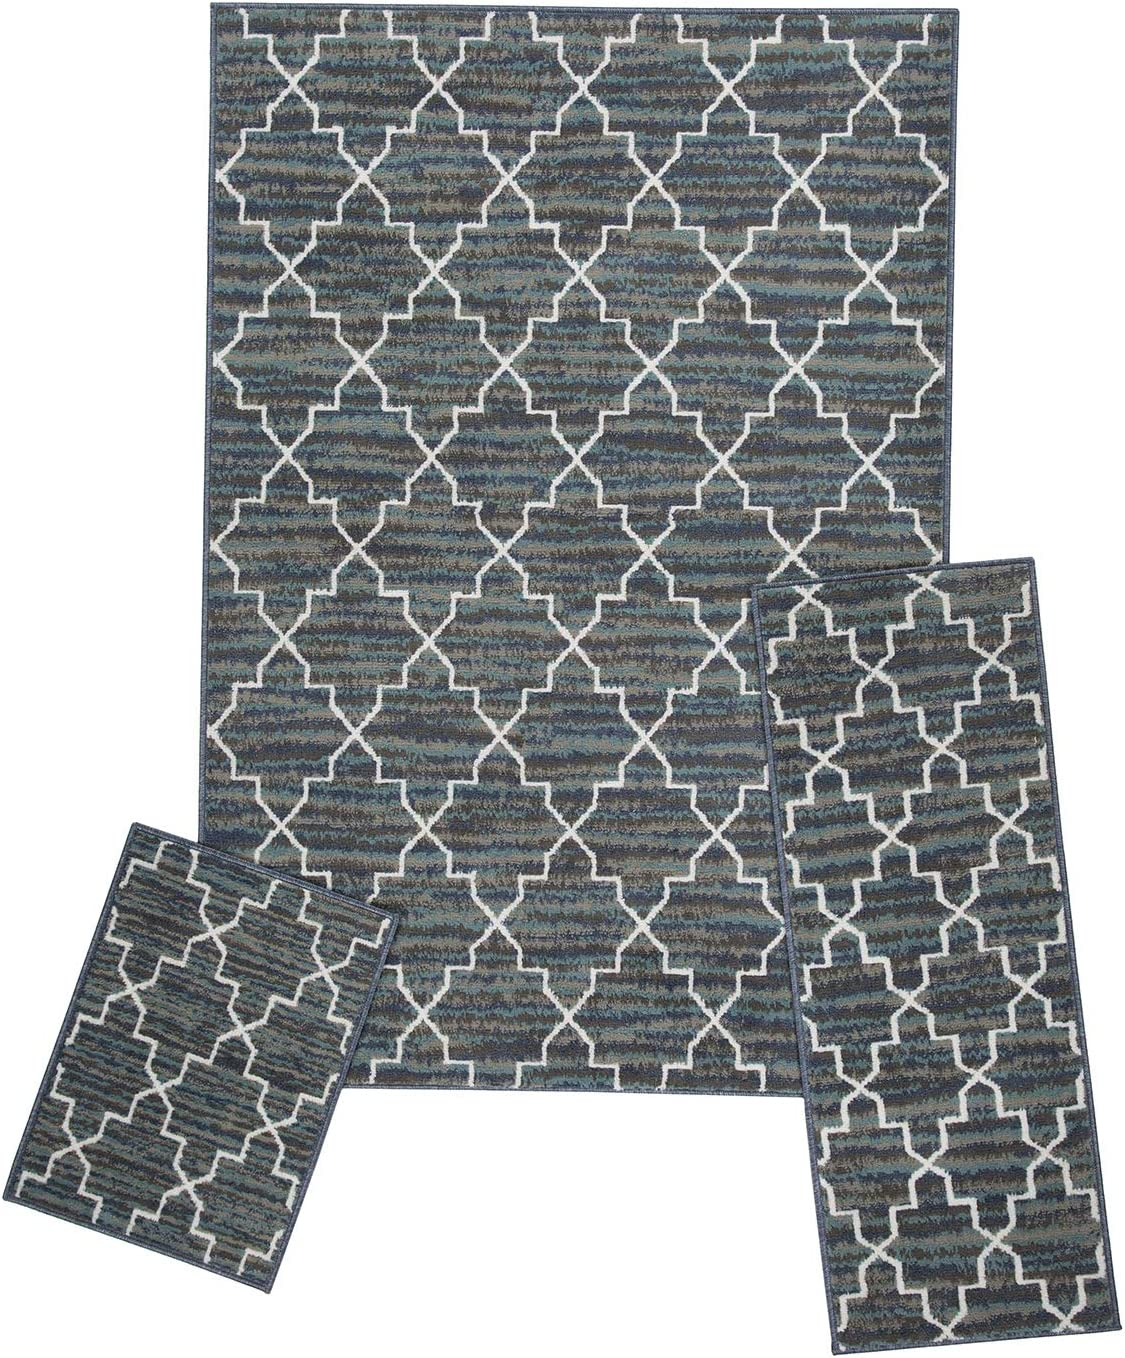 Gorgeous Woven Trends Modern Contemporary 3-Piece Area Rug 5x7 Limited time cheap sale Set